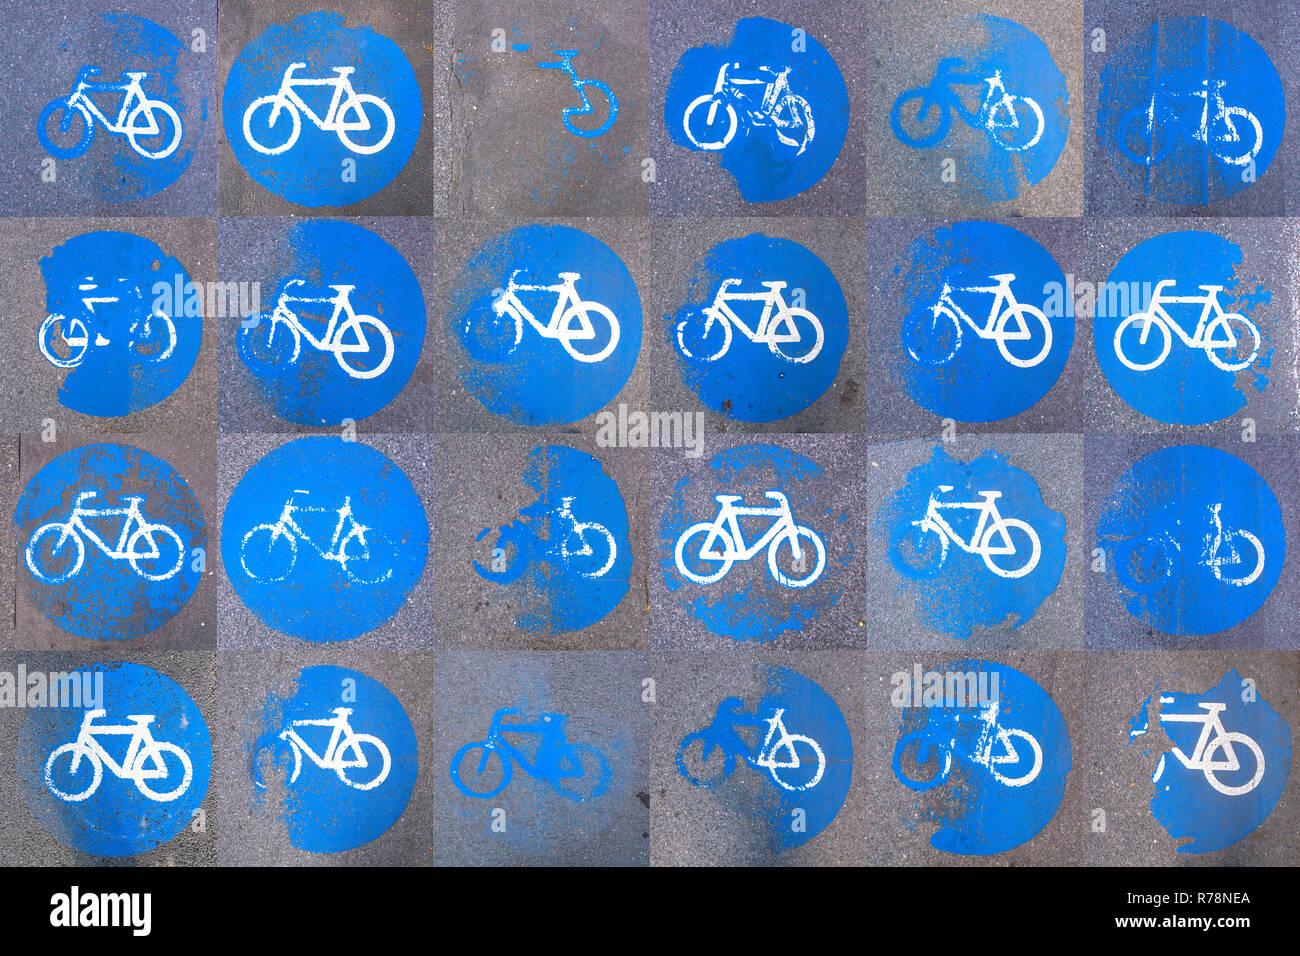 Collage of cycle track markings on a pavement, partly worn away Stock Photo